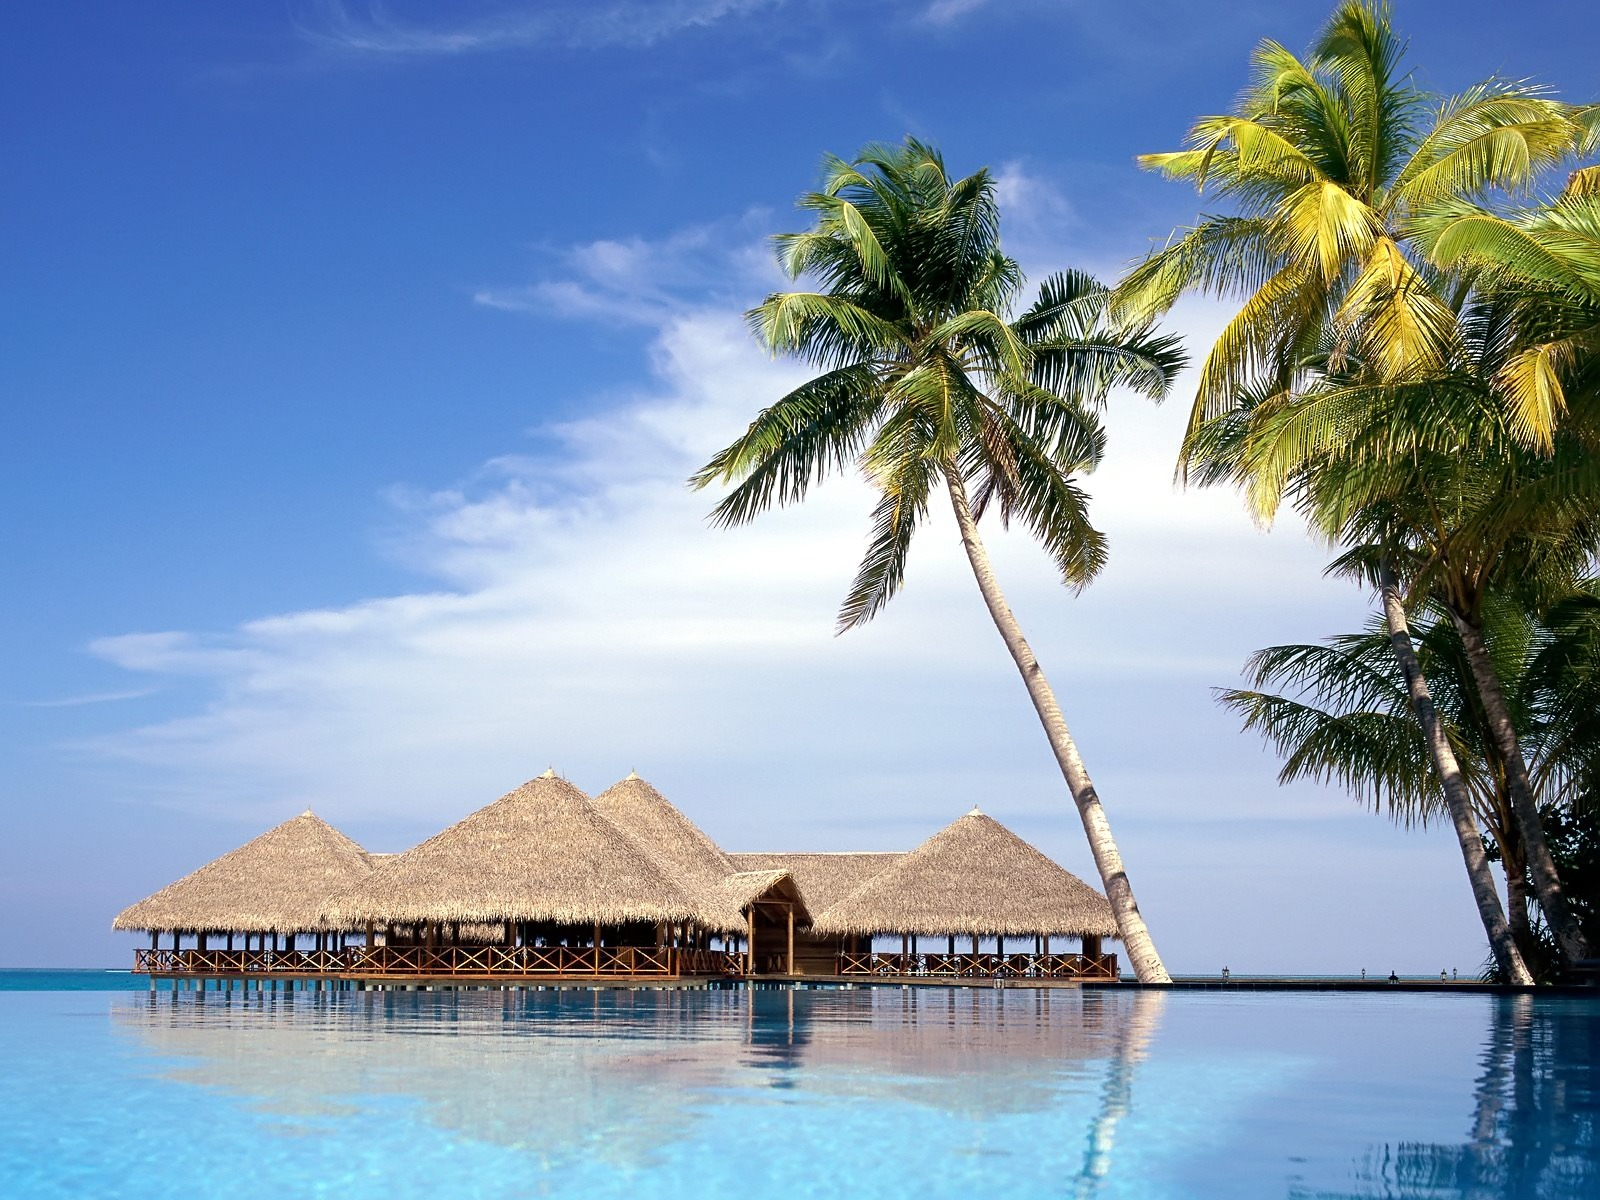 Maldives (Maldive Islands) Pictures, Photos and Images